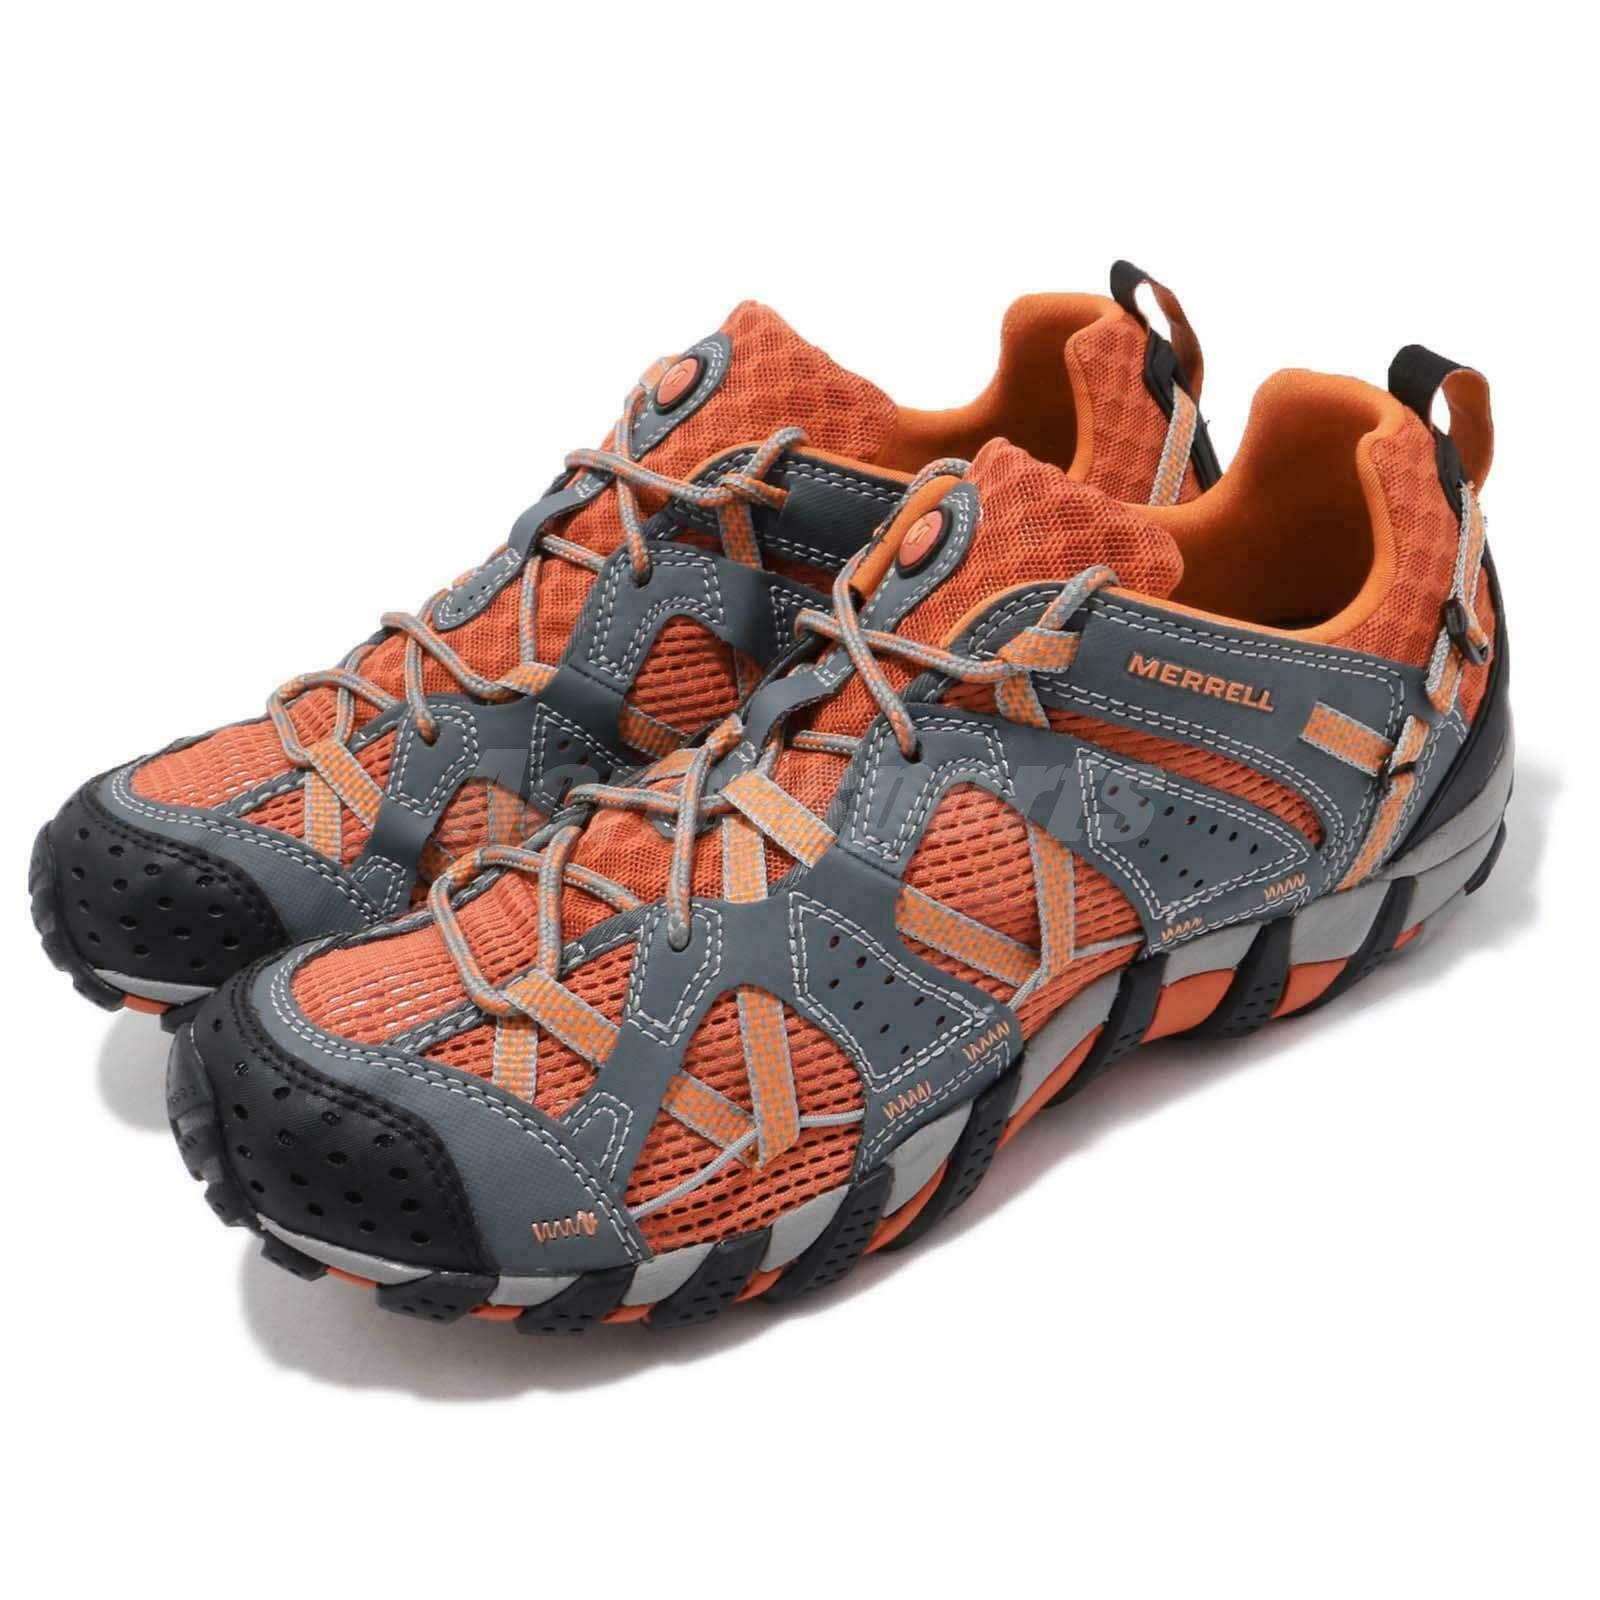 Merrell Waterpro Maipo Grey orange Vibram Men  Hiking Adventure shoes J65229  with 100% quality and %100 service